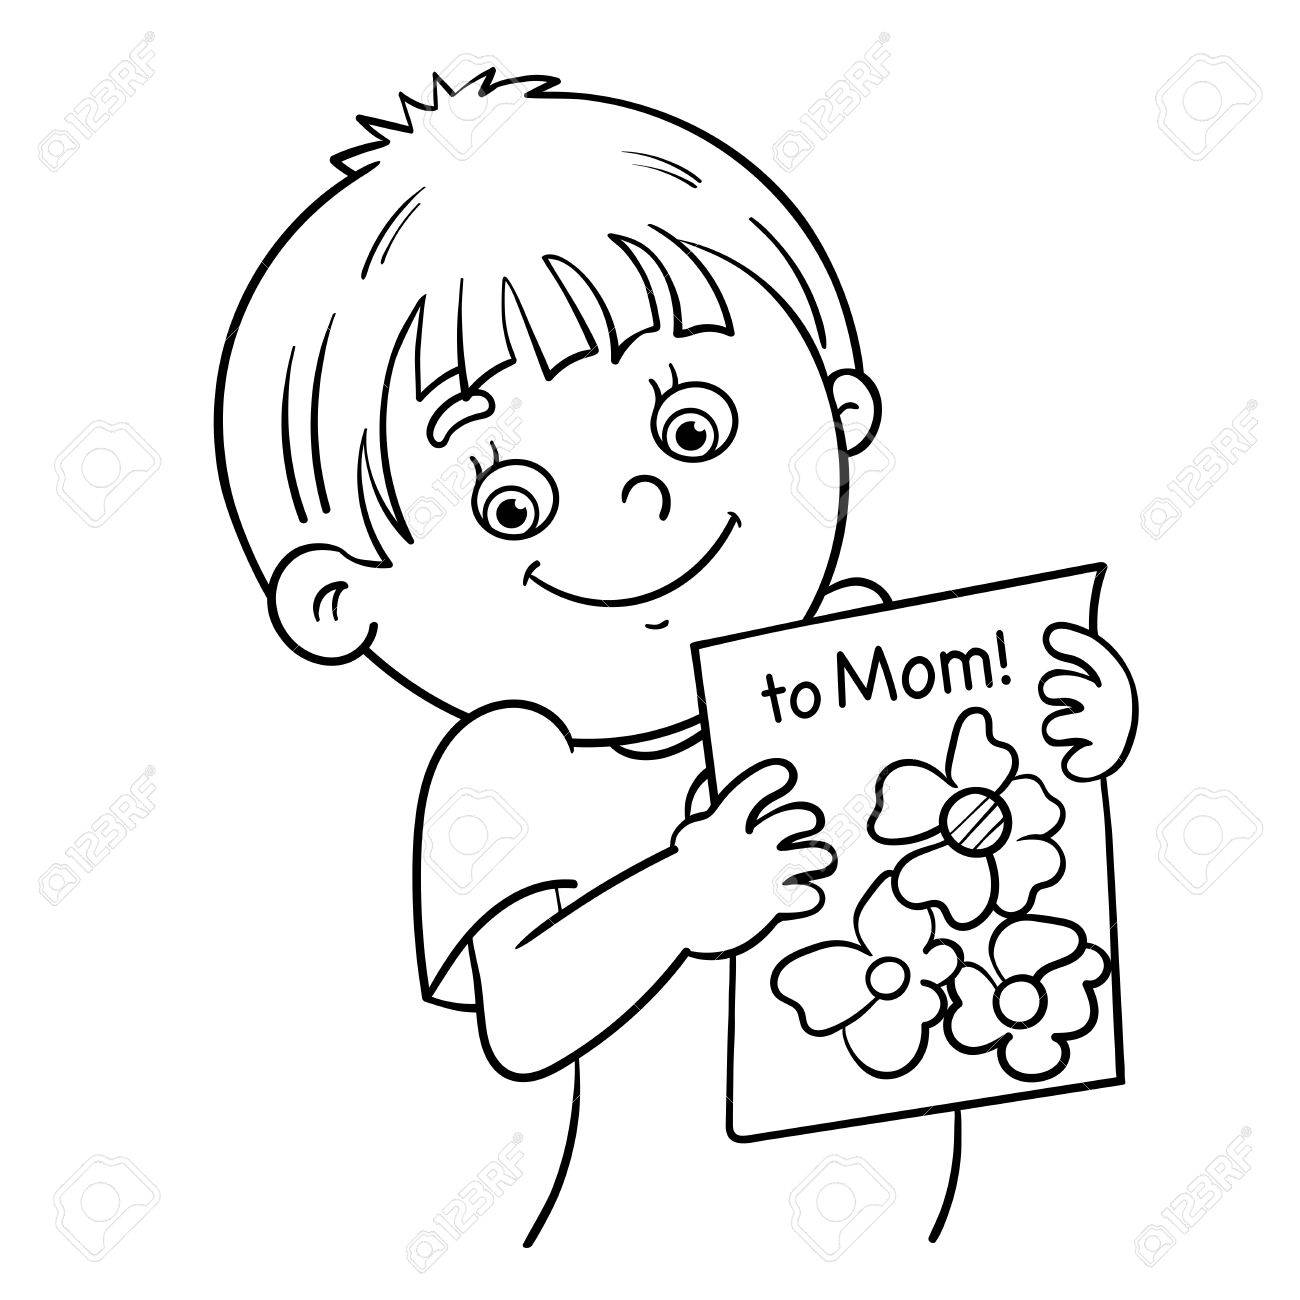 Coloring Page Outline Of A Cartoon Boy With Picture Stock Vector